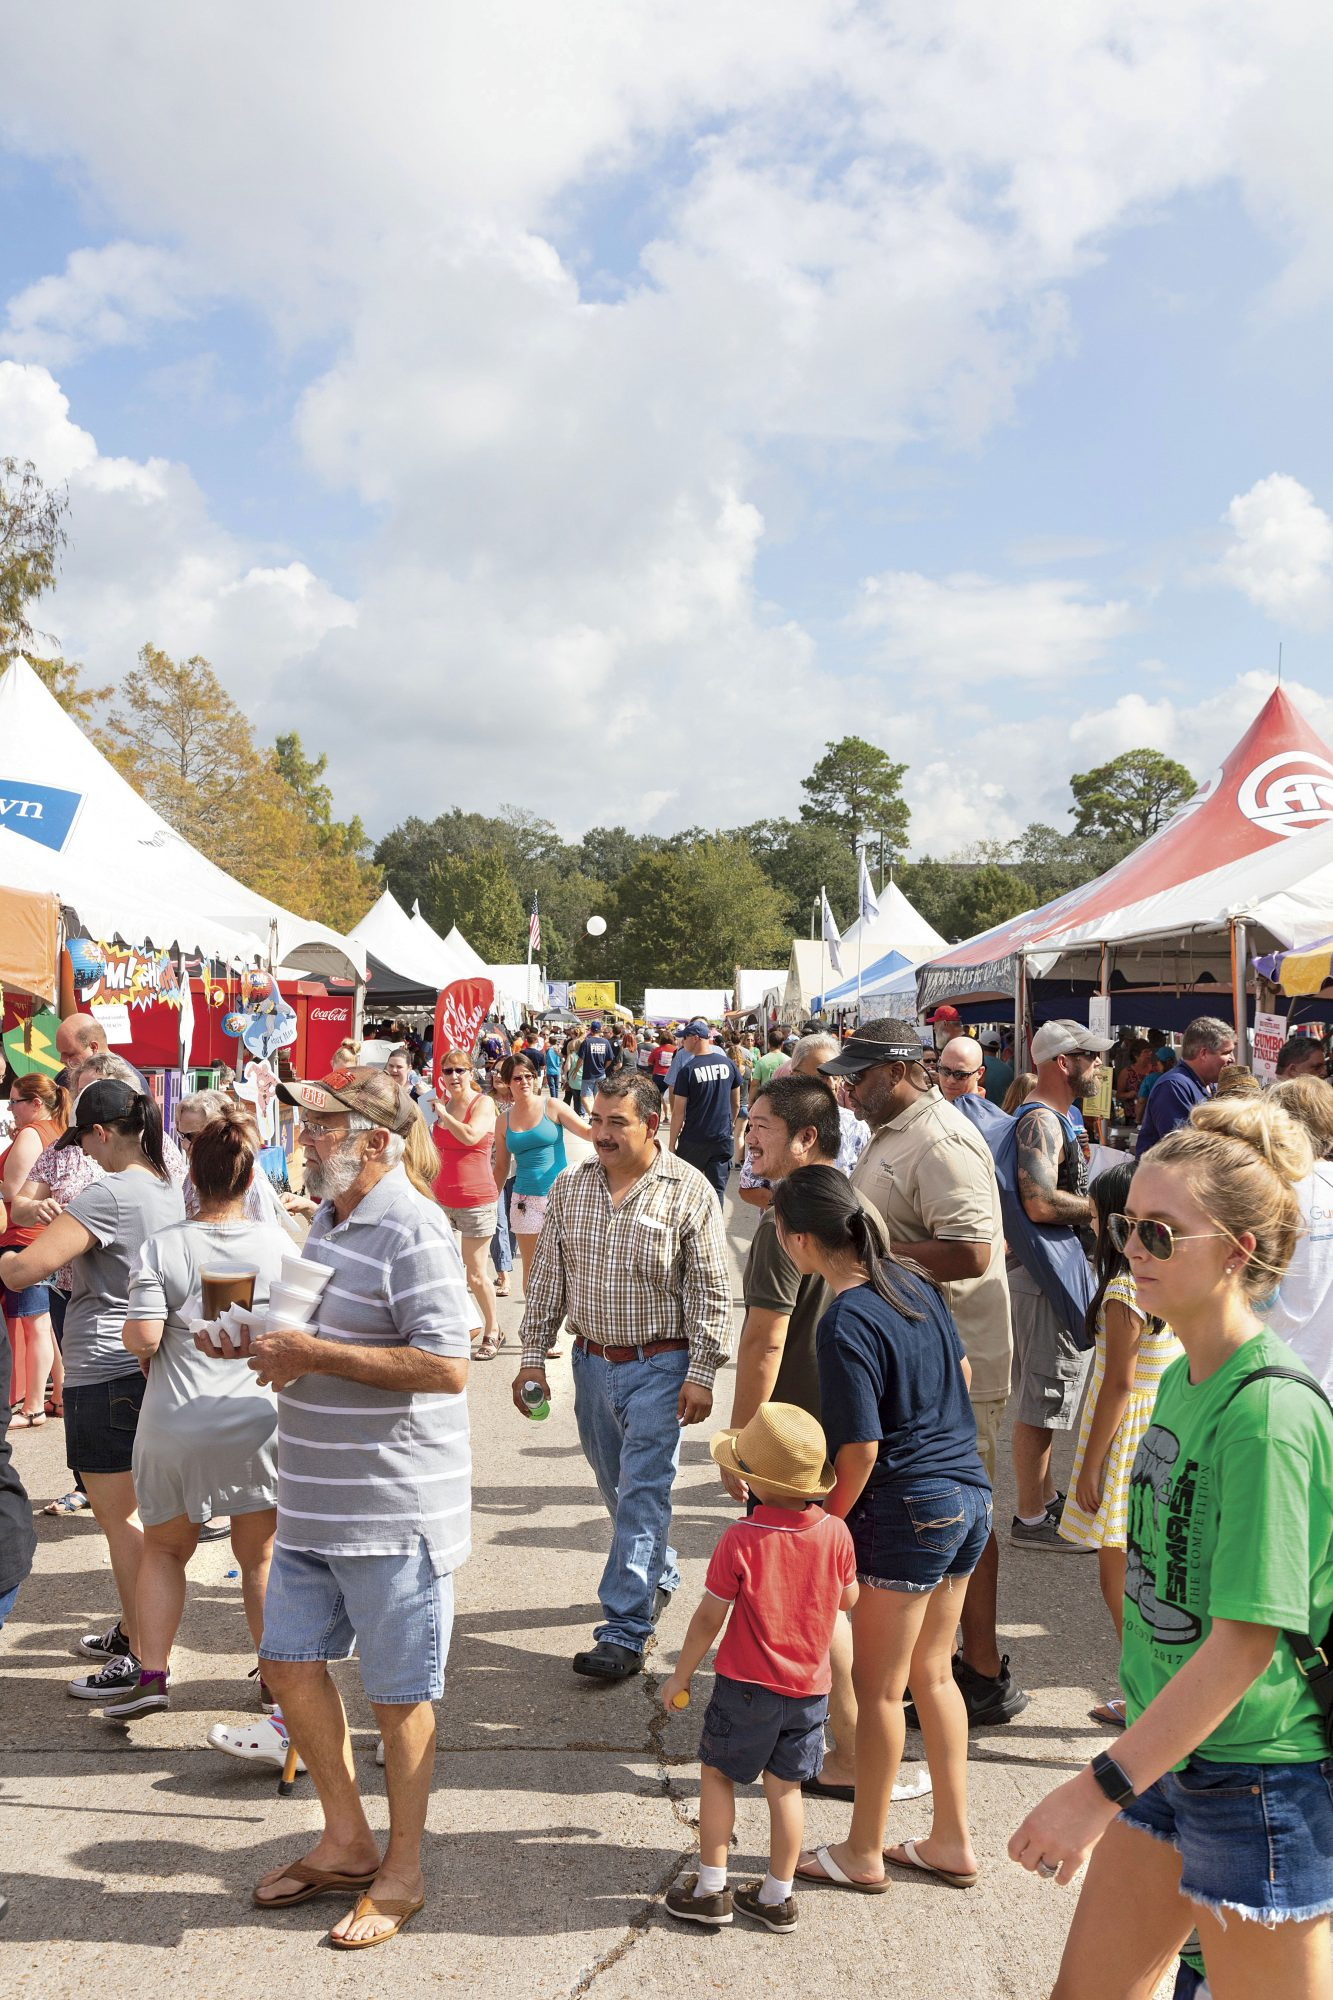 Crowd at the Gumbo Cookoff in New Iberia, LA